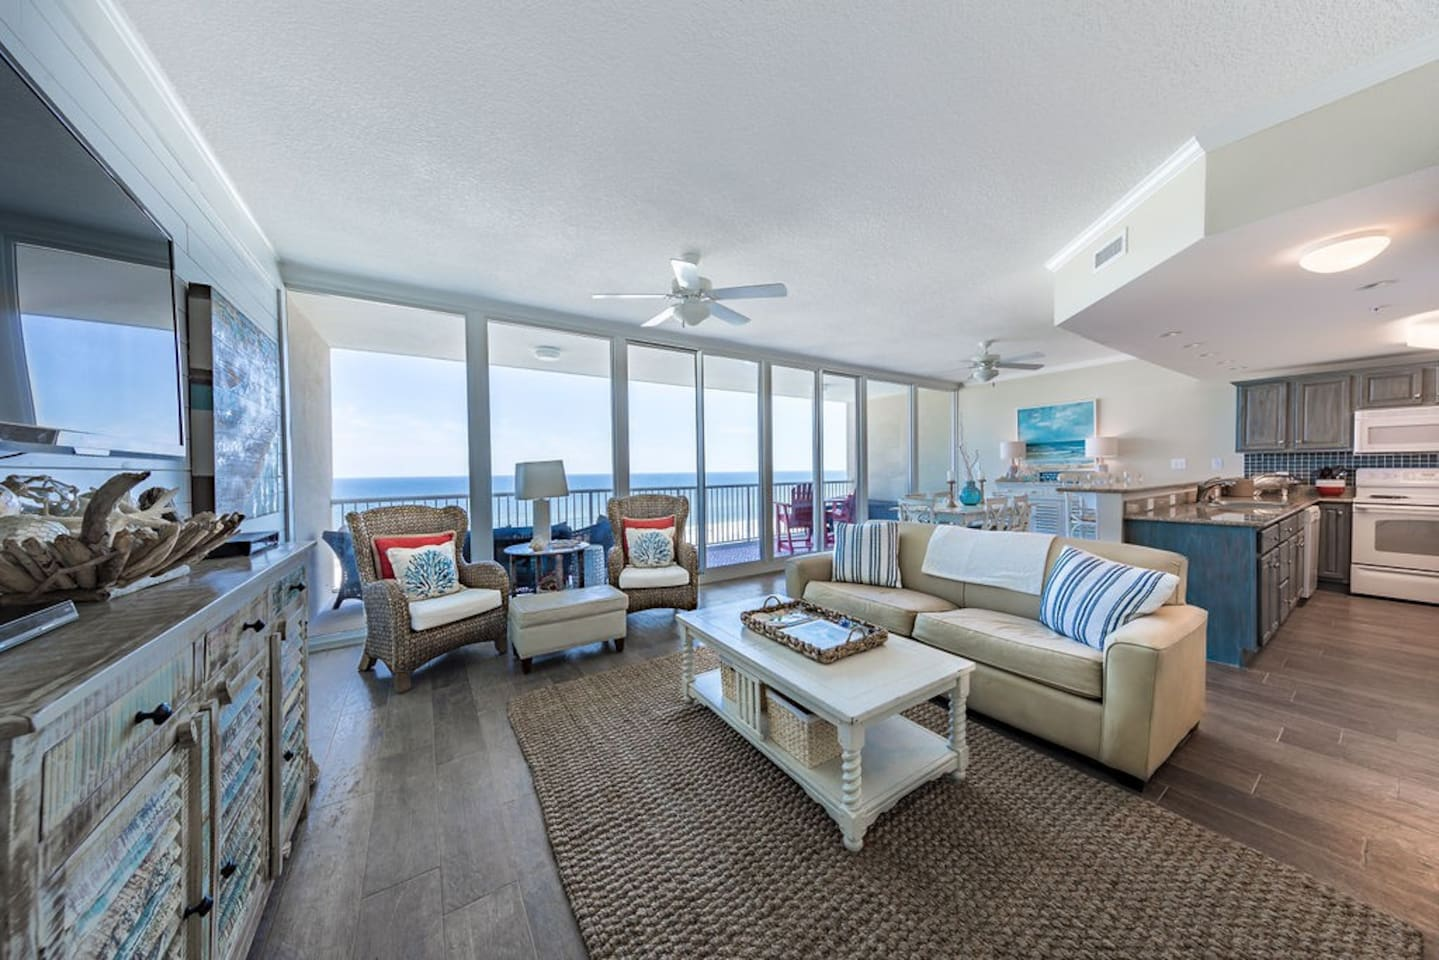 large open floor plan with 30 feet of window views of the ocean.  Welcoming decor for you to relax and a large balcony with seating to relax with your favorite beverage and enjoy miles and miles of ocean views.  Perfect views at sunrise and sunset.